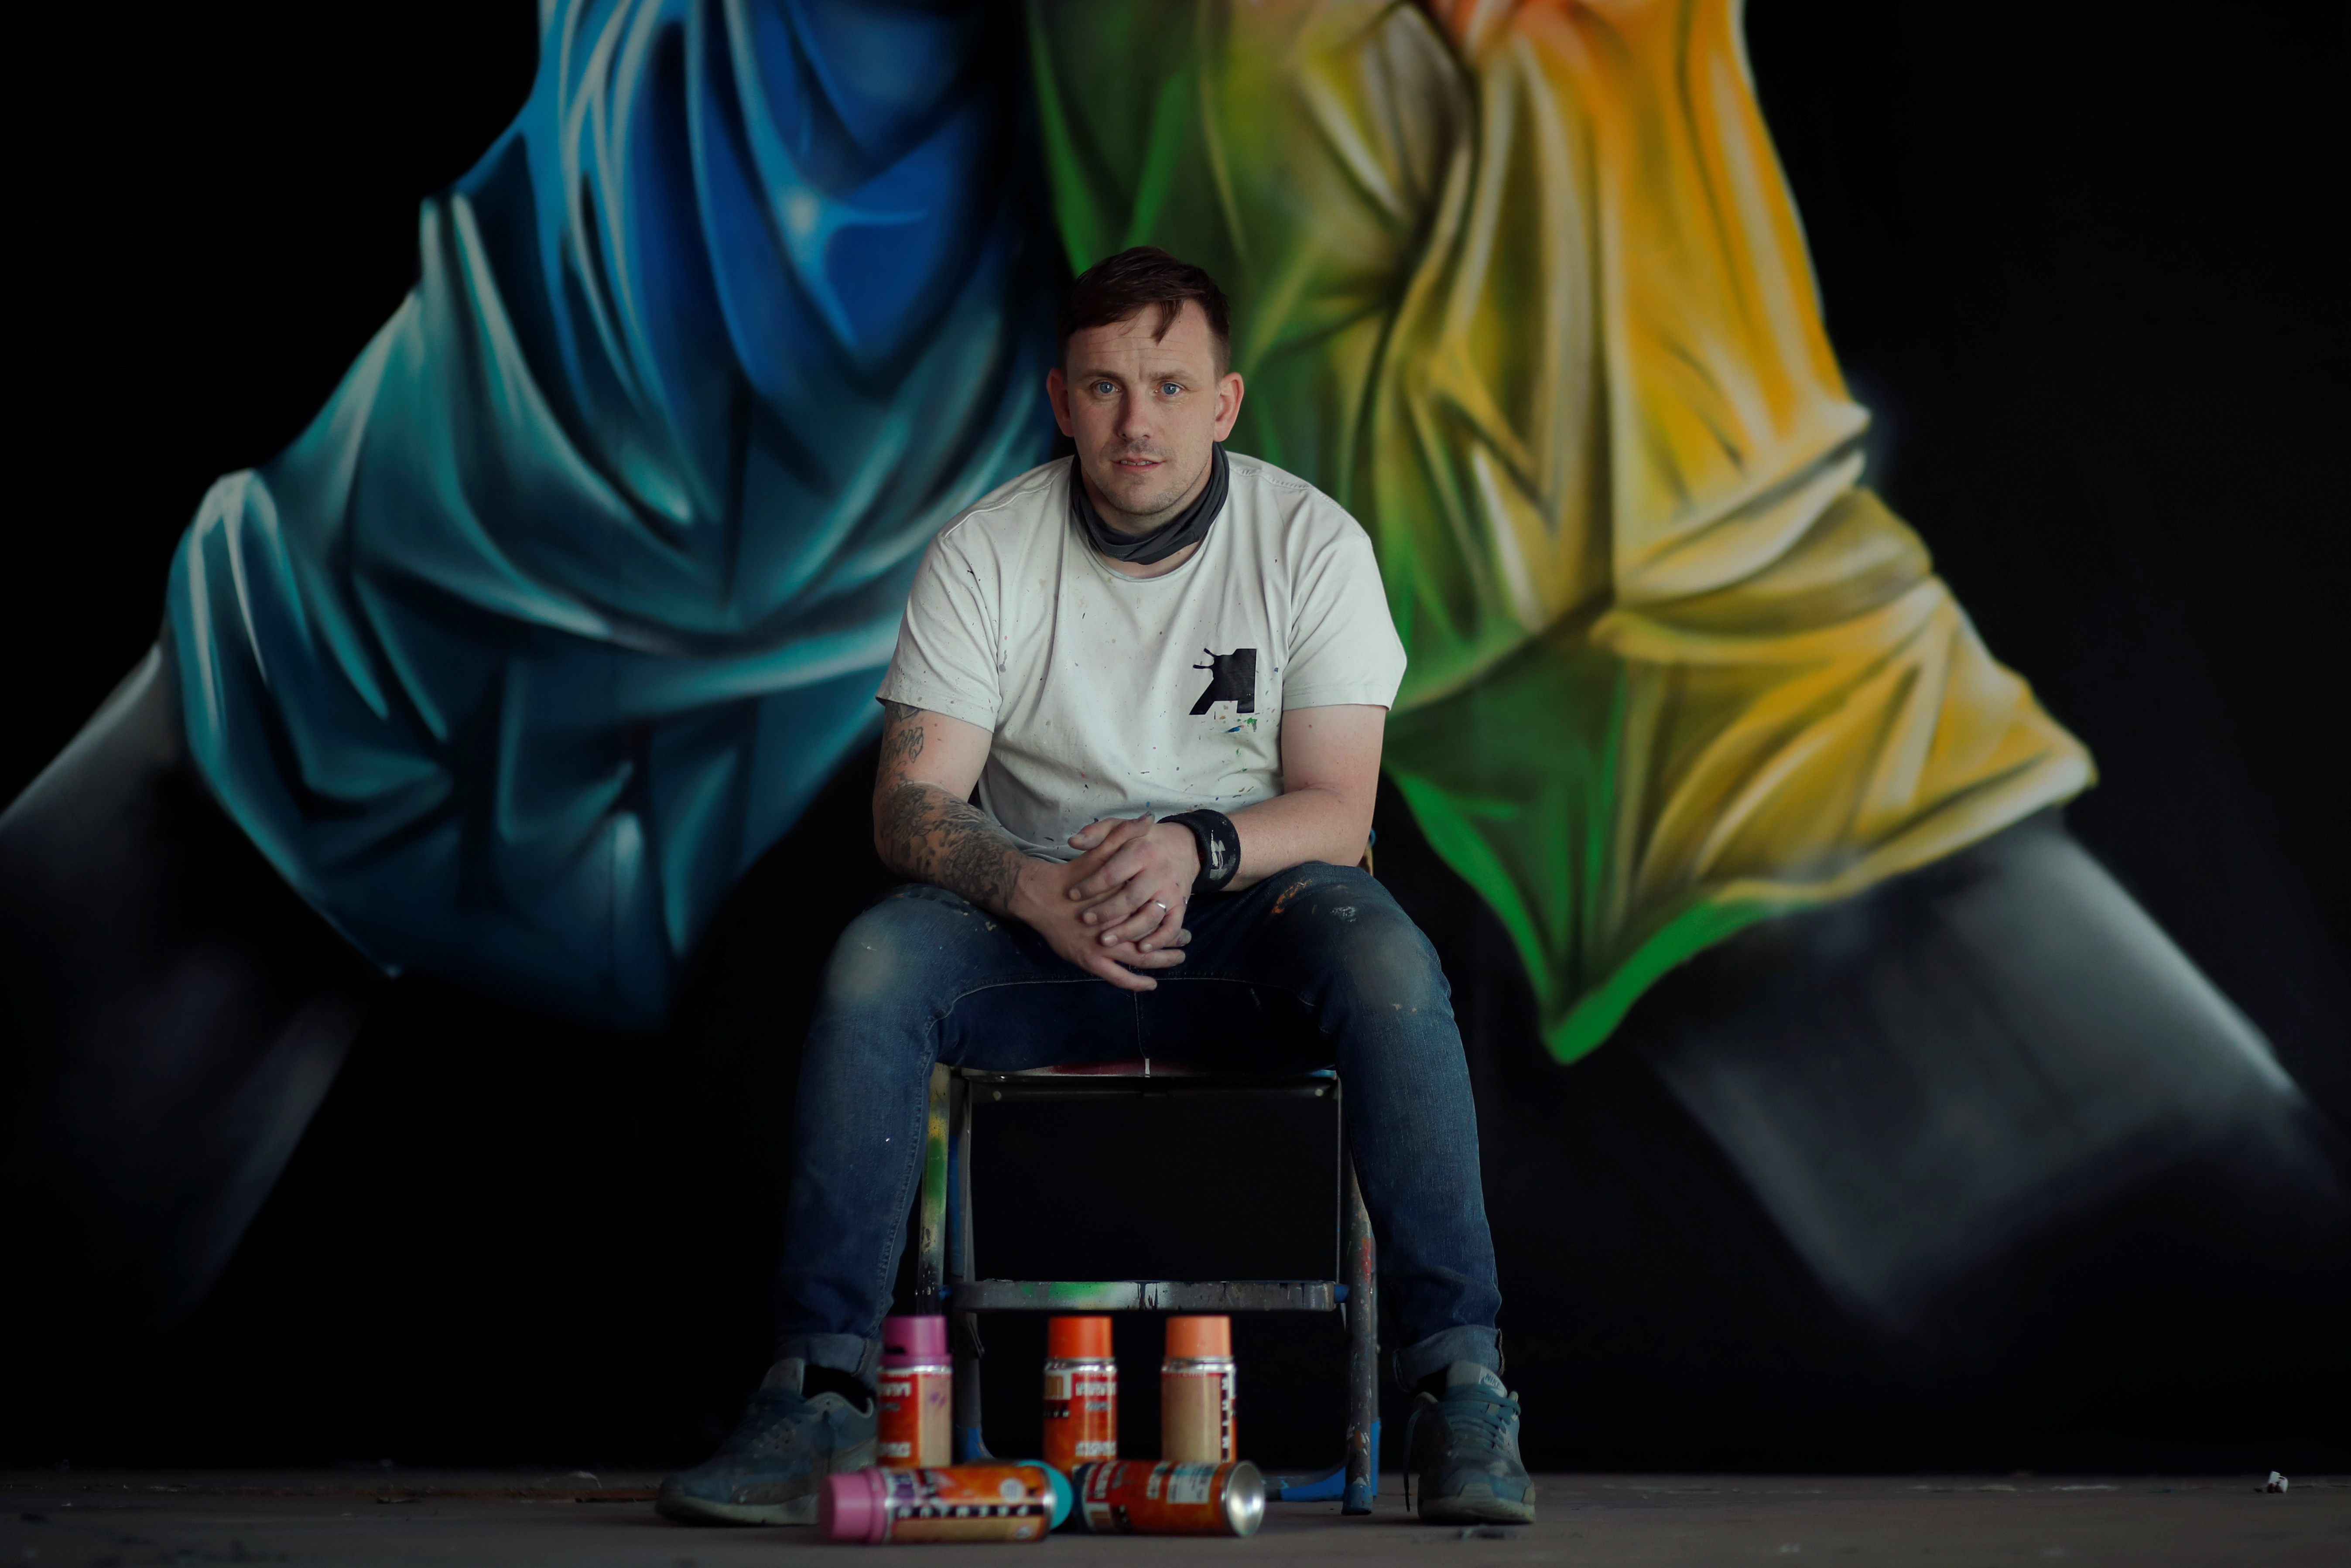 Street artist Nathan Murdoch poses for a picture in front of his artwork after he creates a piece of crypto art to be auctioned with proceeds donated to the NHS in Peterborough, Britain, April 15, 2021. REUTERS/Andrew Couldridge